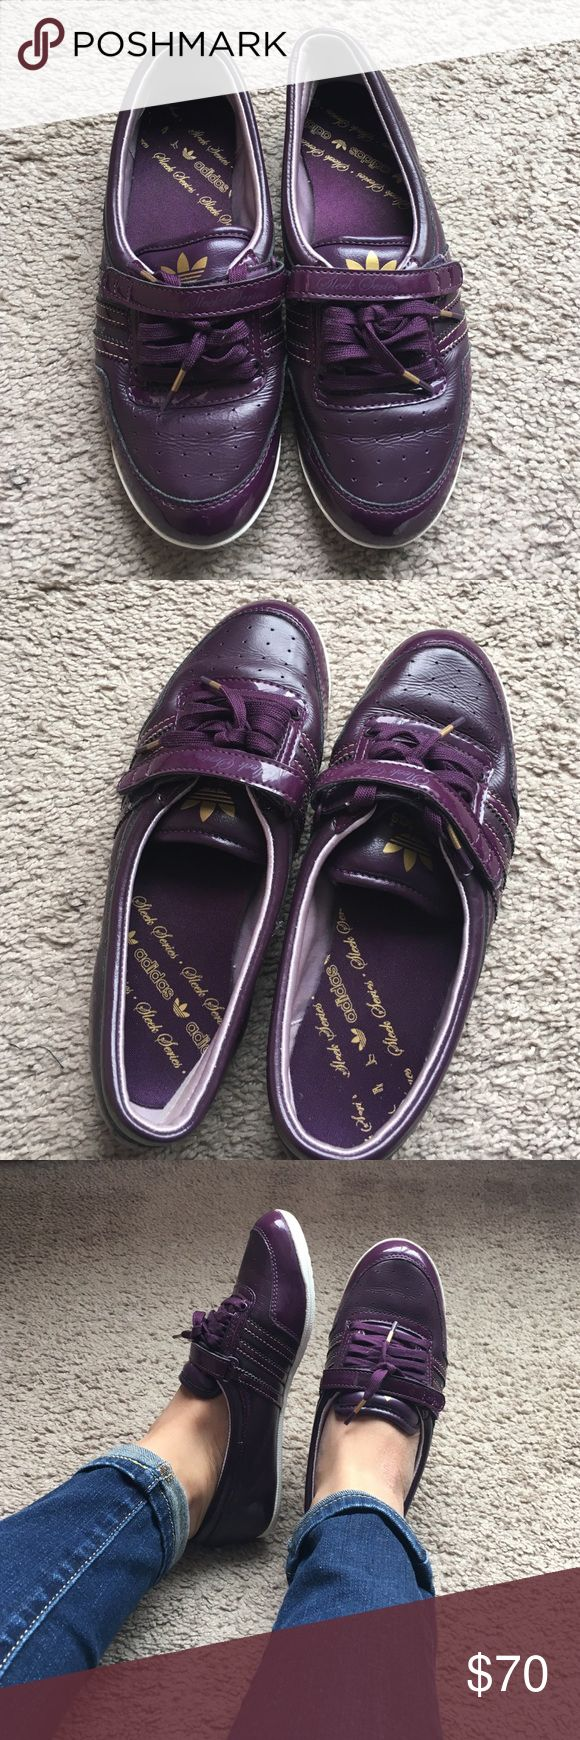 Adidas Sleek Series shoes WOMENS ADIDAS CONCORD ROUND W SLEEK SERIES PURPLE SHOES. Adjustable front. Wore only twice, in great condition Adidas Shoes Flats & Loafers